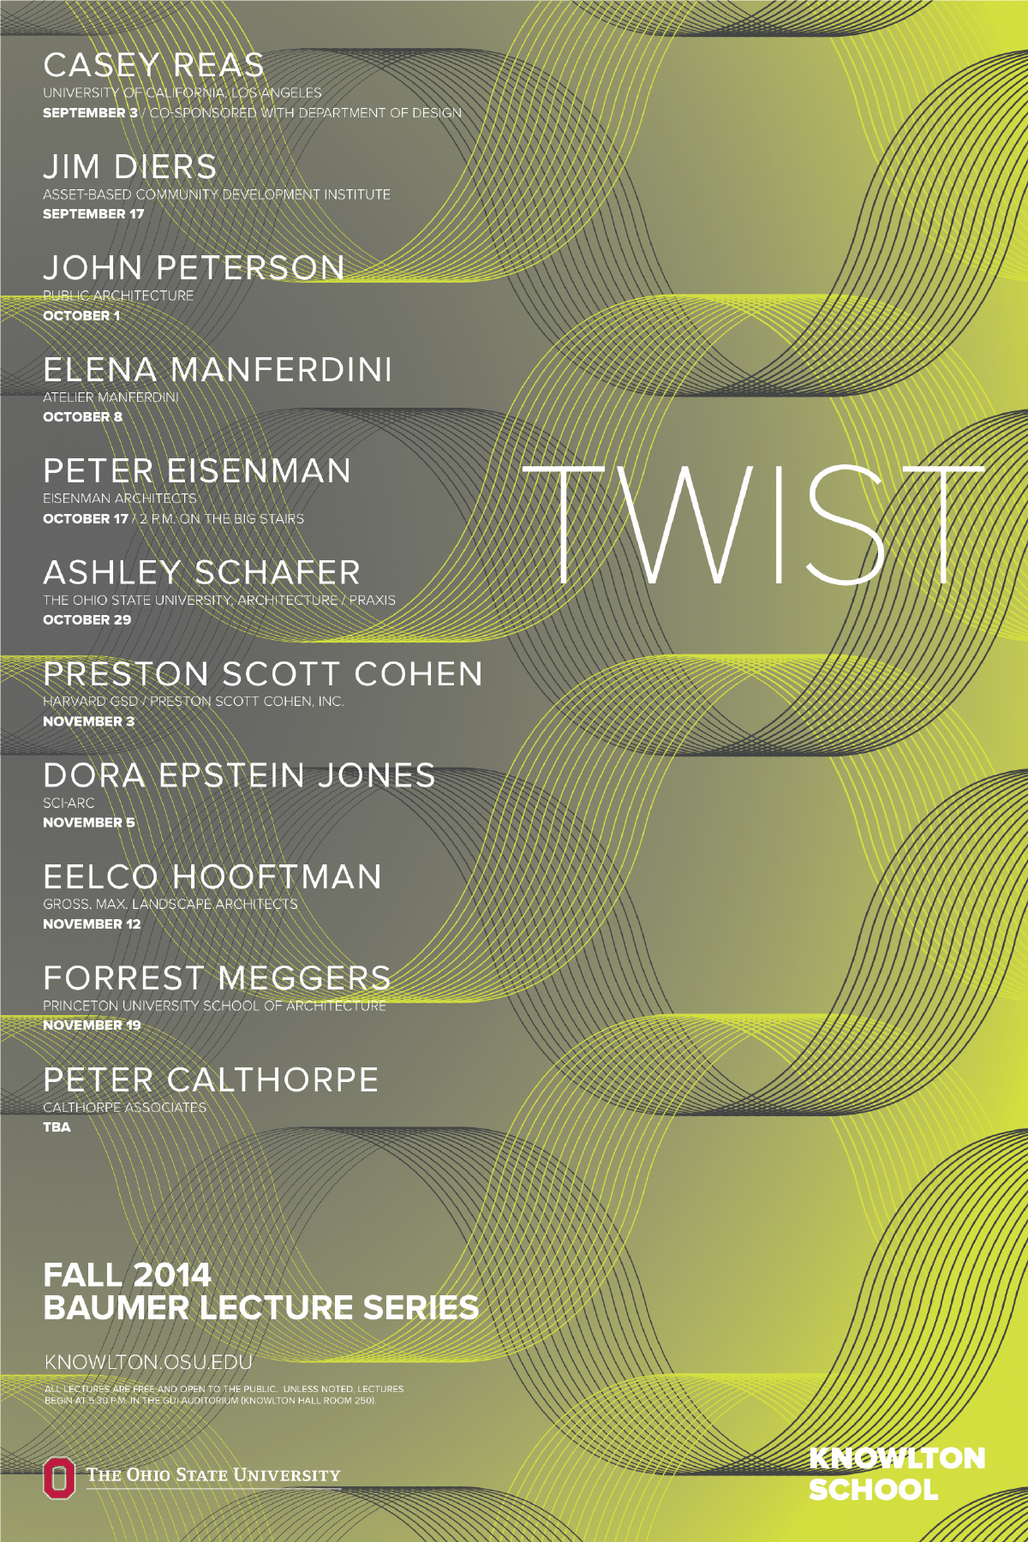 Fall '14 Baumer Lecture Series at Knowlton School of Architecture, Ohio State University. Image via knowlton.osu.edu